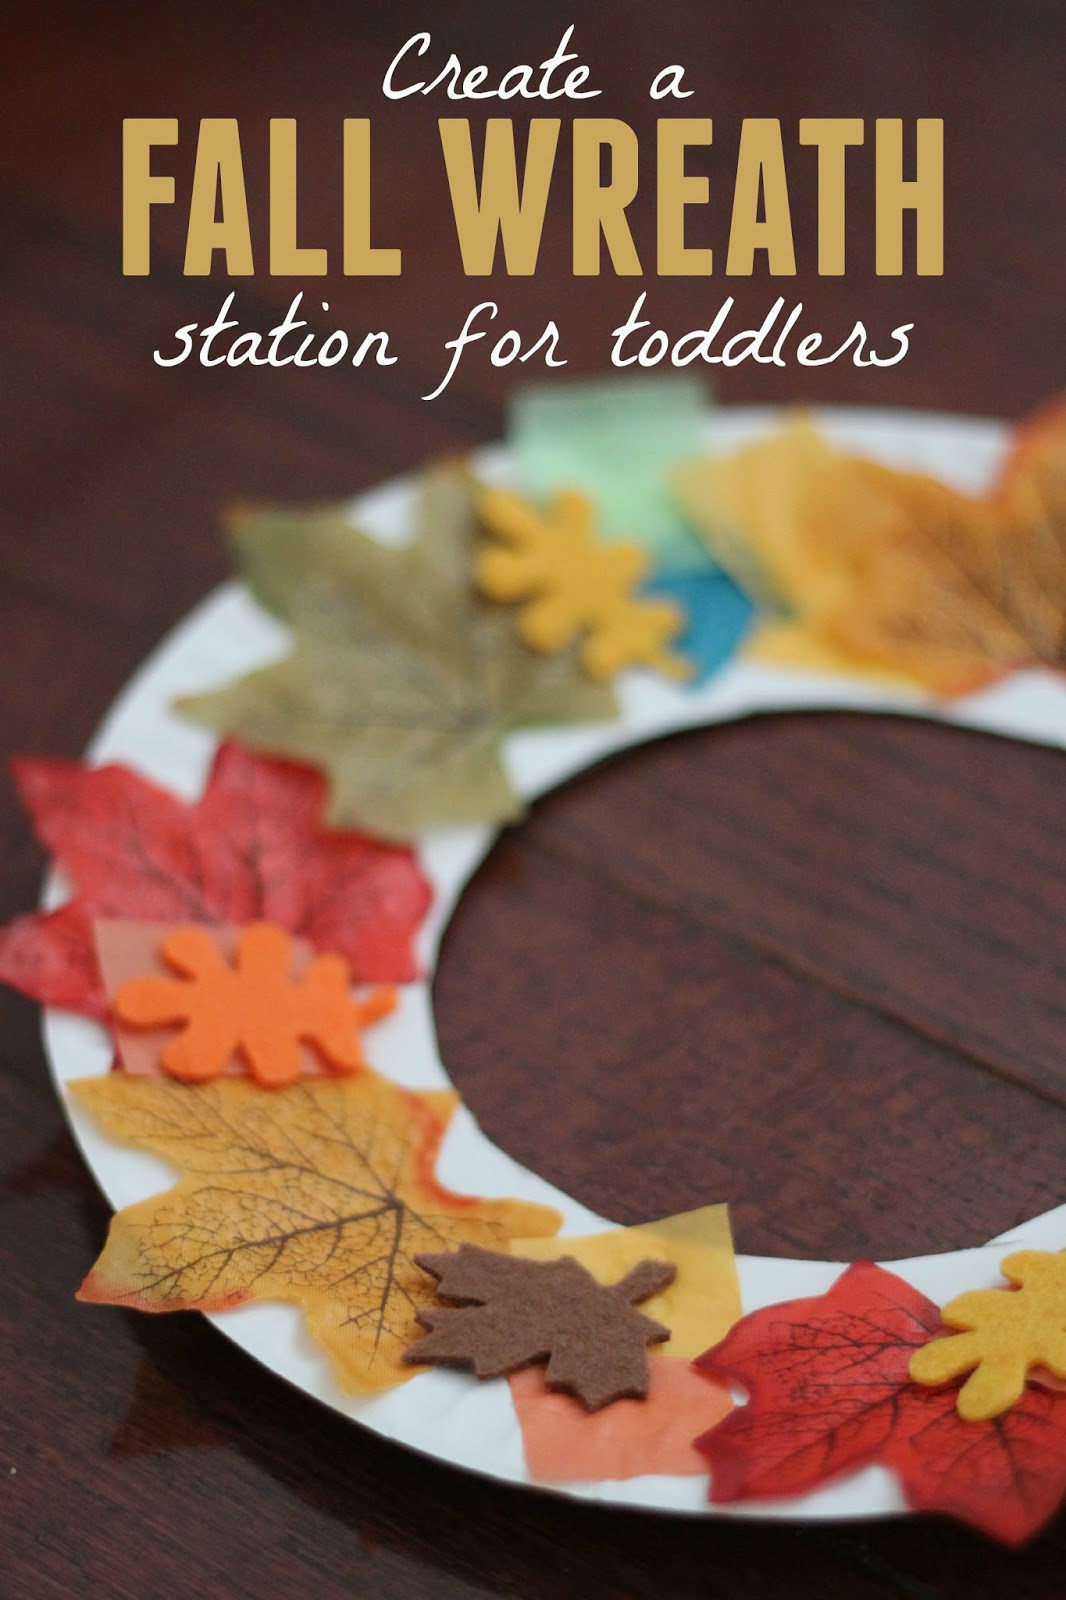 Fall Toddler Craft Ideas  Toddler Approved Fall Wreath Making Station for Toddlers